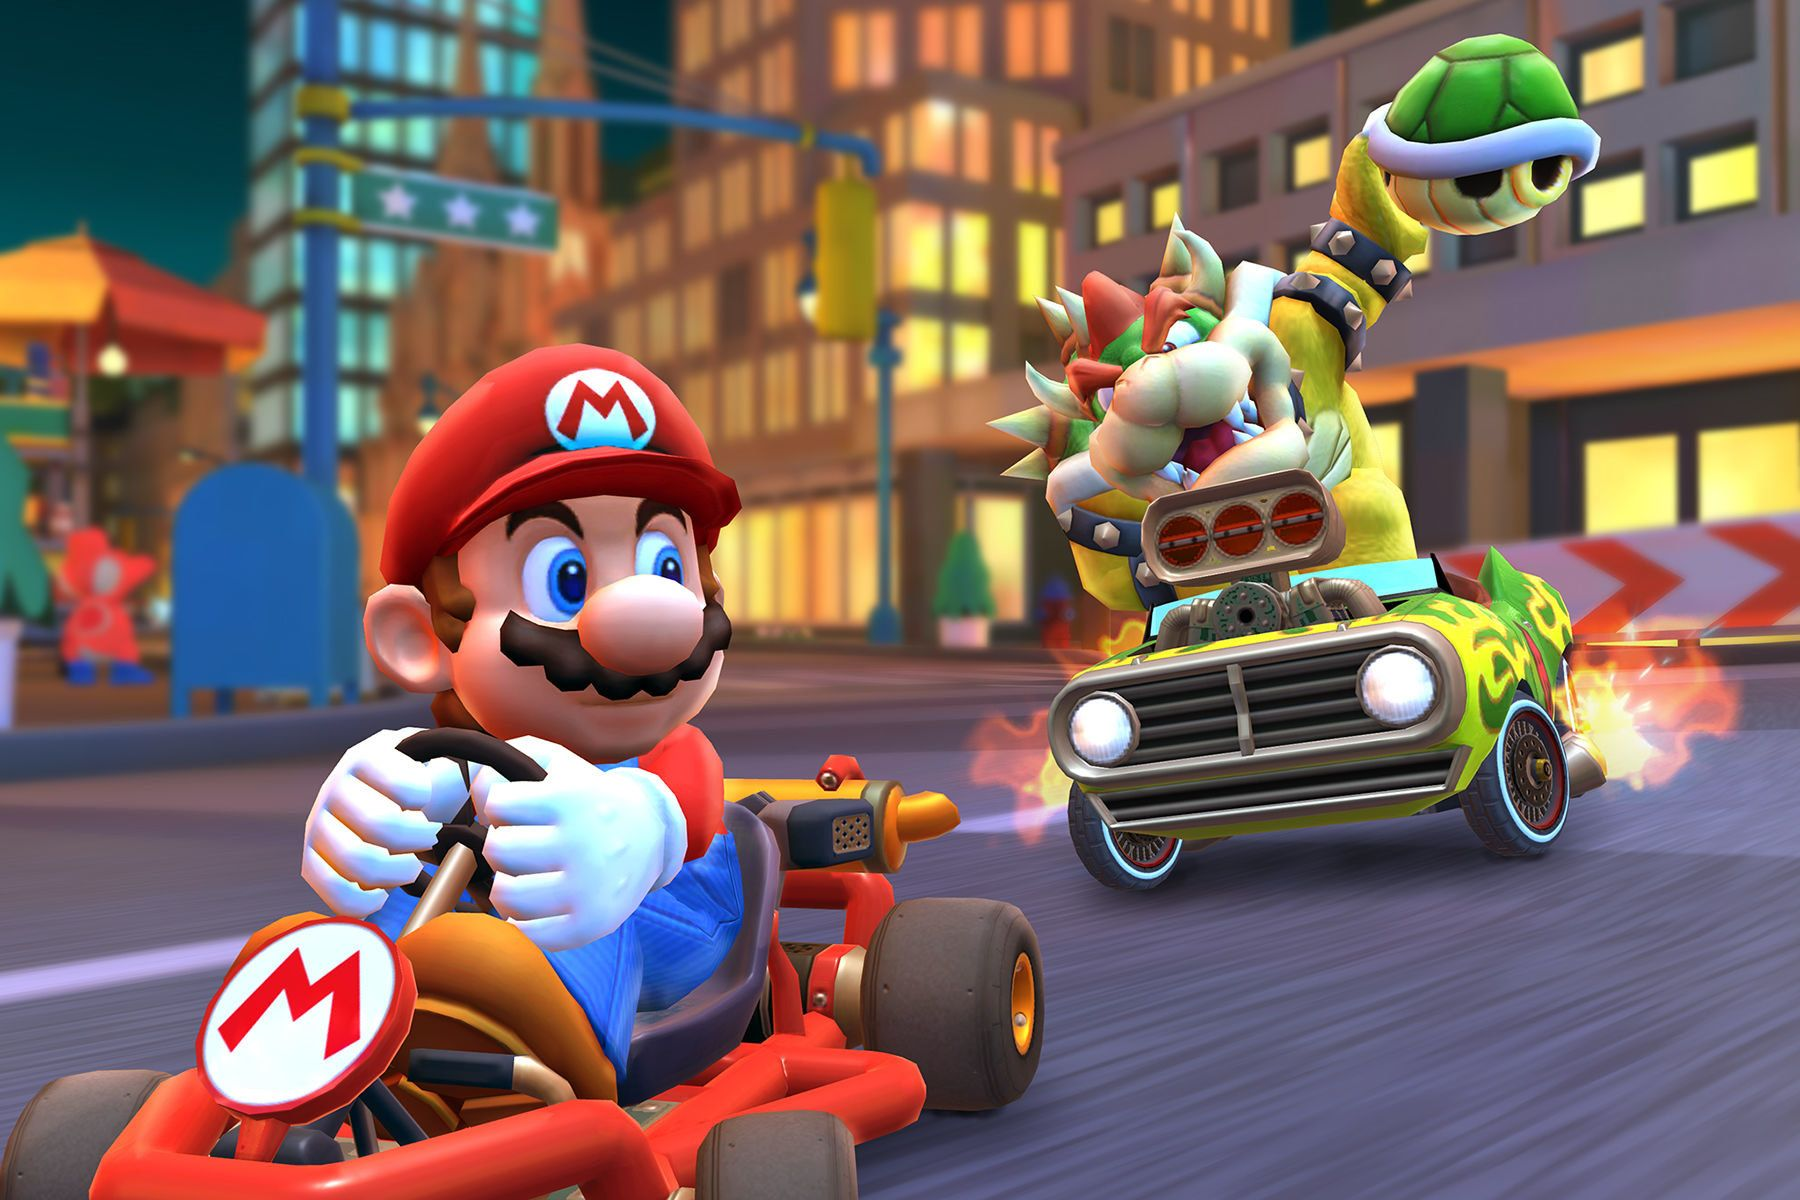 Mario Kart Tour Tips And Tricks Tutorial To Improve Your Gameplay And Keep You Ahead Of